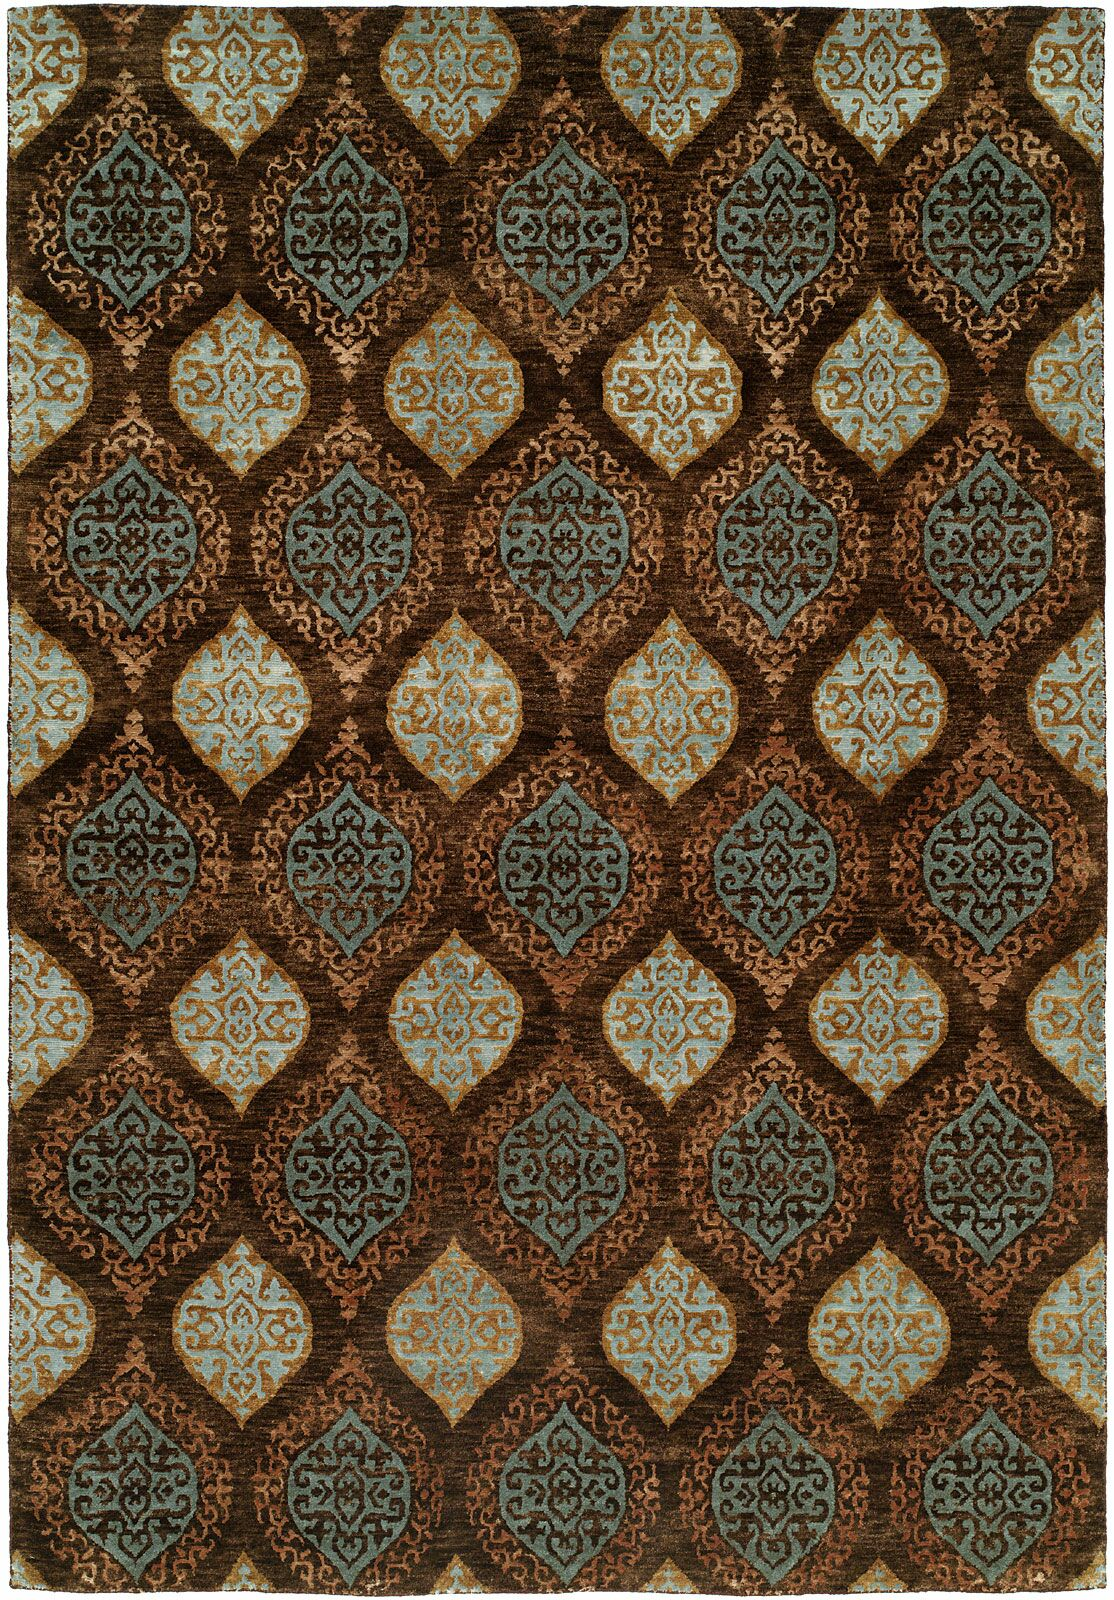 Guayaquil Hand-Knotted Brown/Ivory Area Rug Rug Size: Round 6'